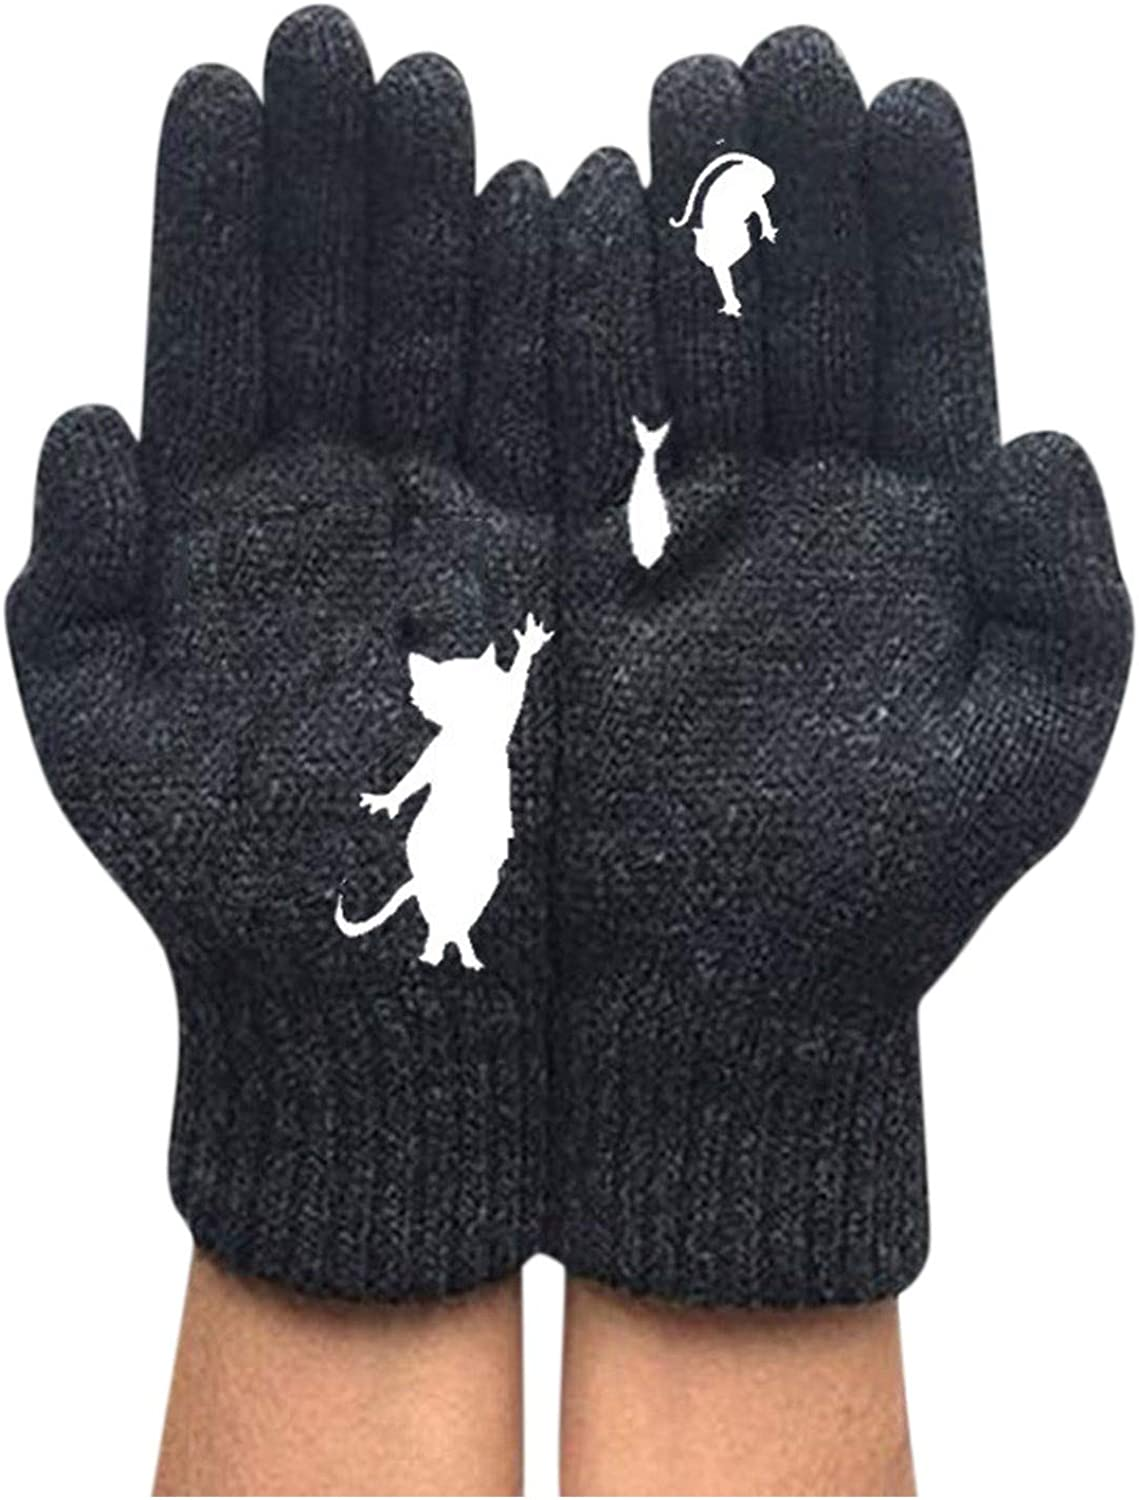 Mittens Cold Weather Gloves/Cat&Fishing Printing Warm Cotton/Polyester Knitting Gloves